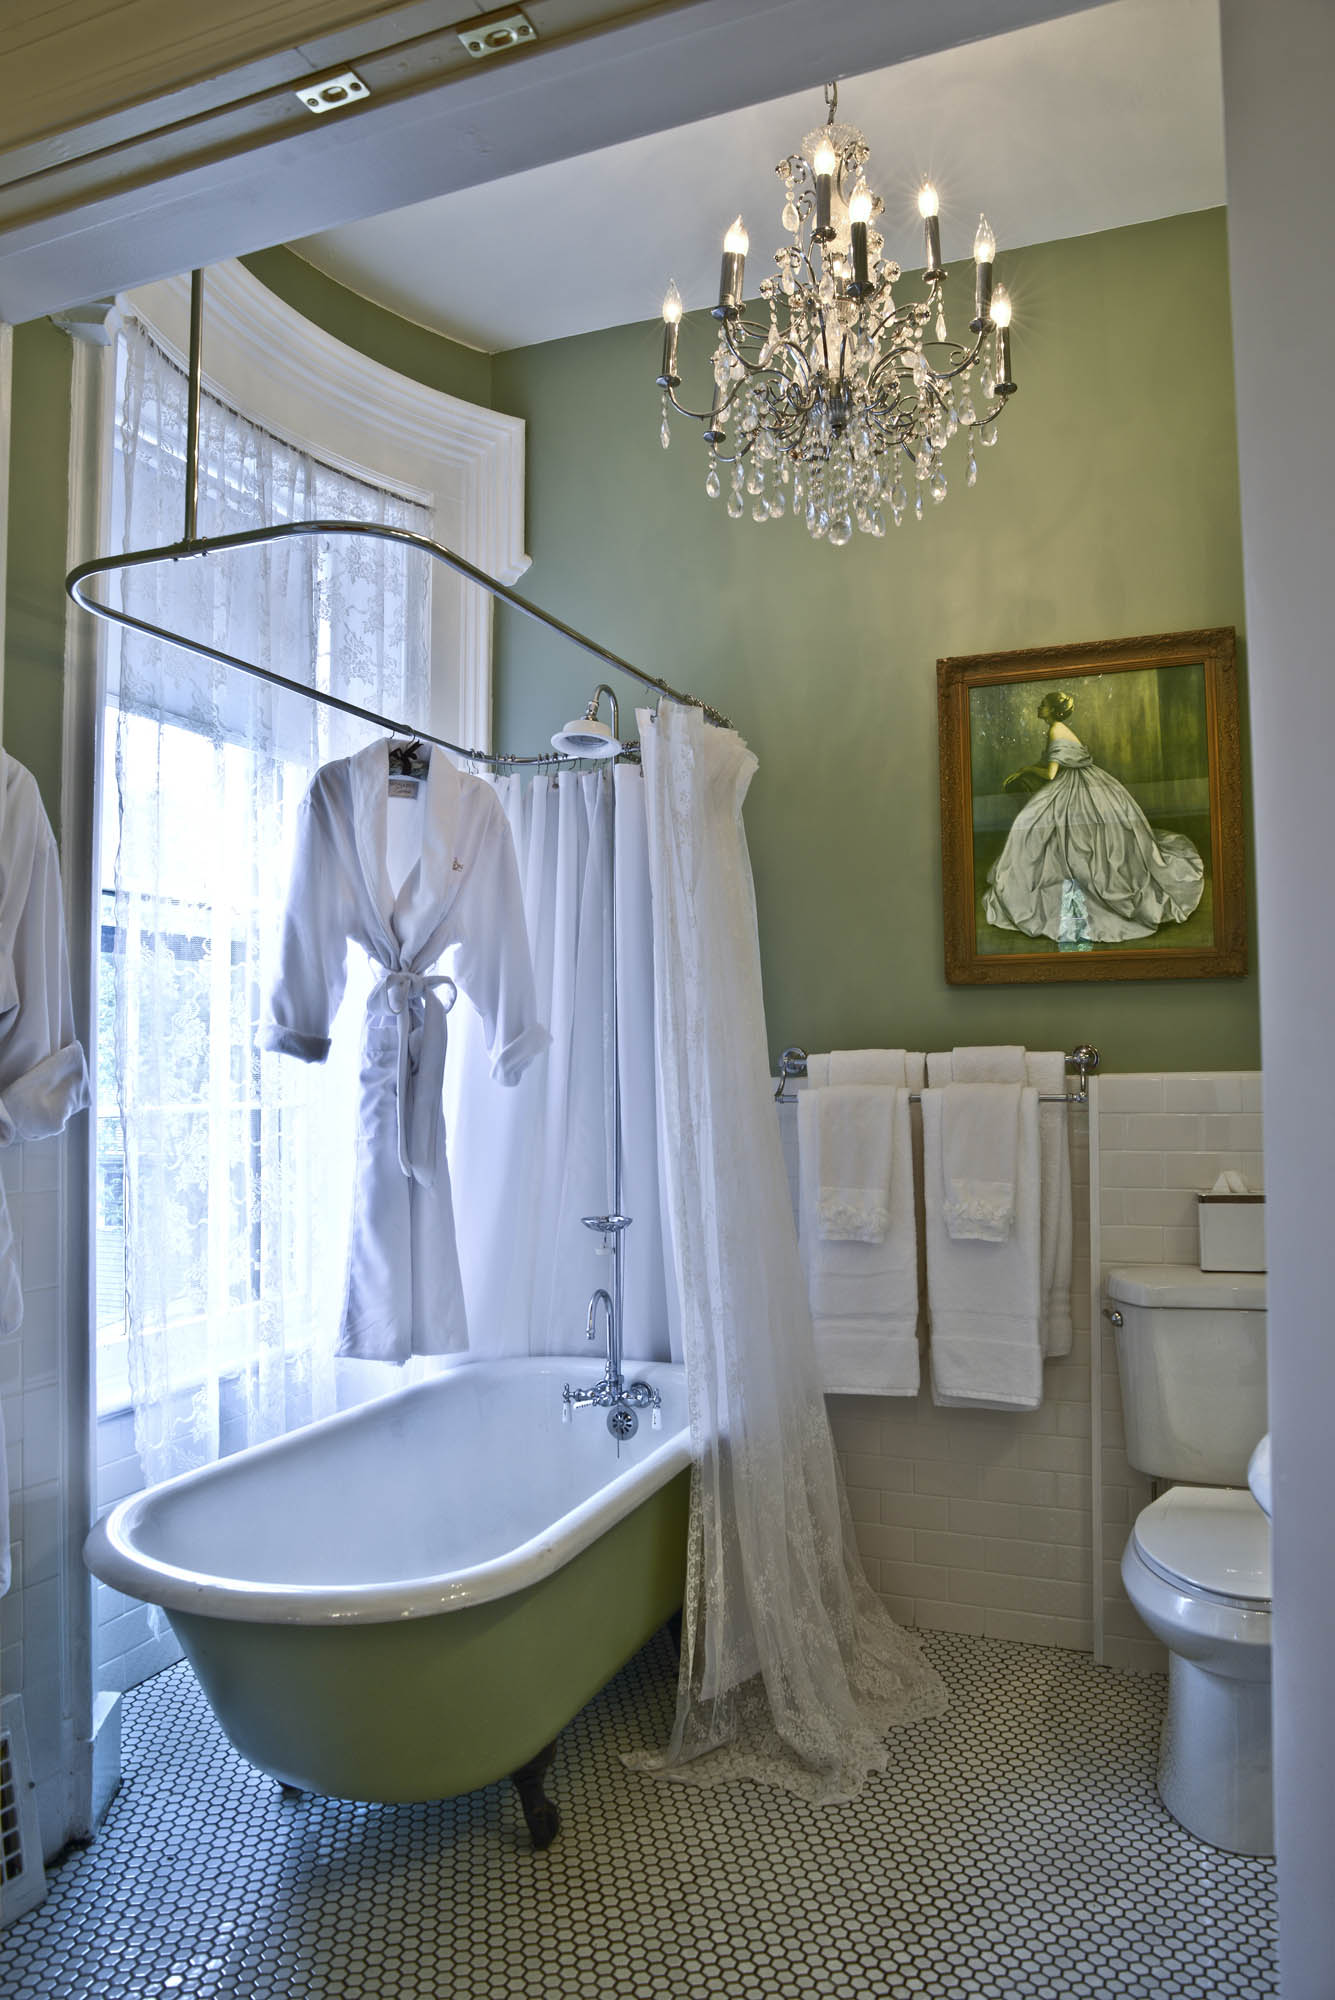 Maxwell Mansion Room Traditional Historic House Bathroom Lake Geneva Wisconsin.jpg